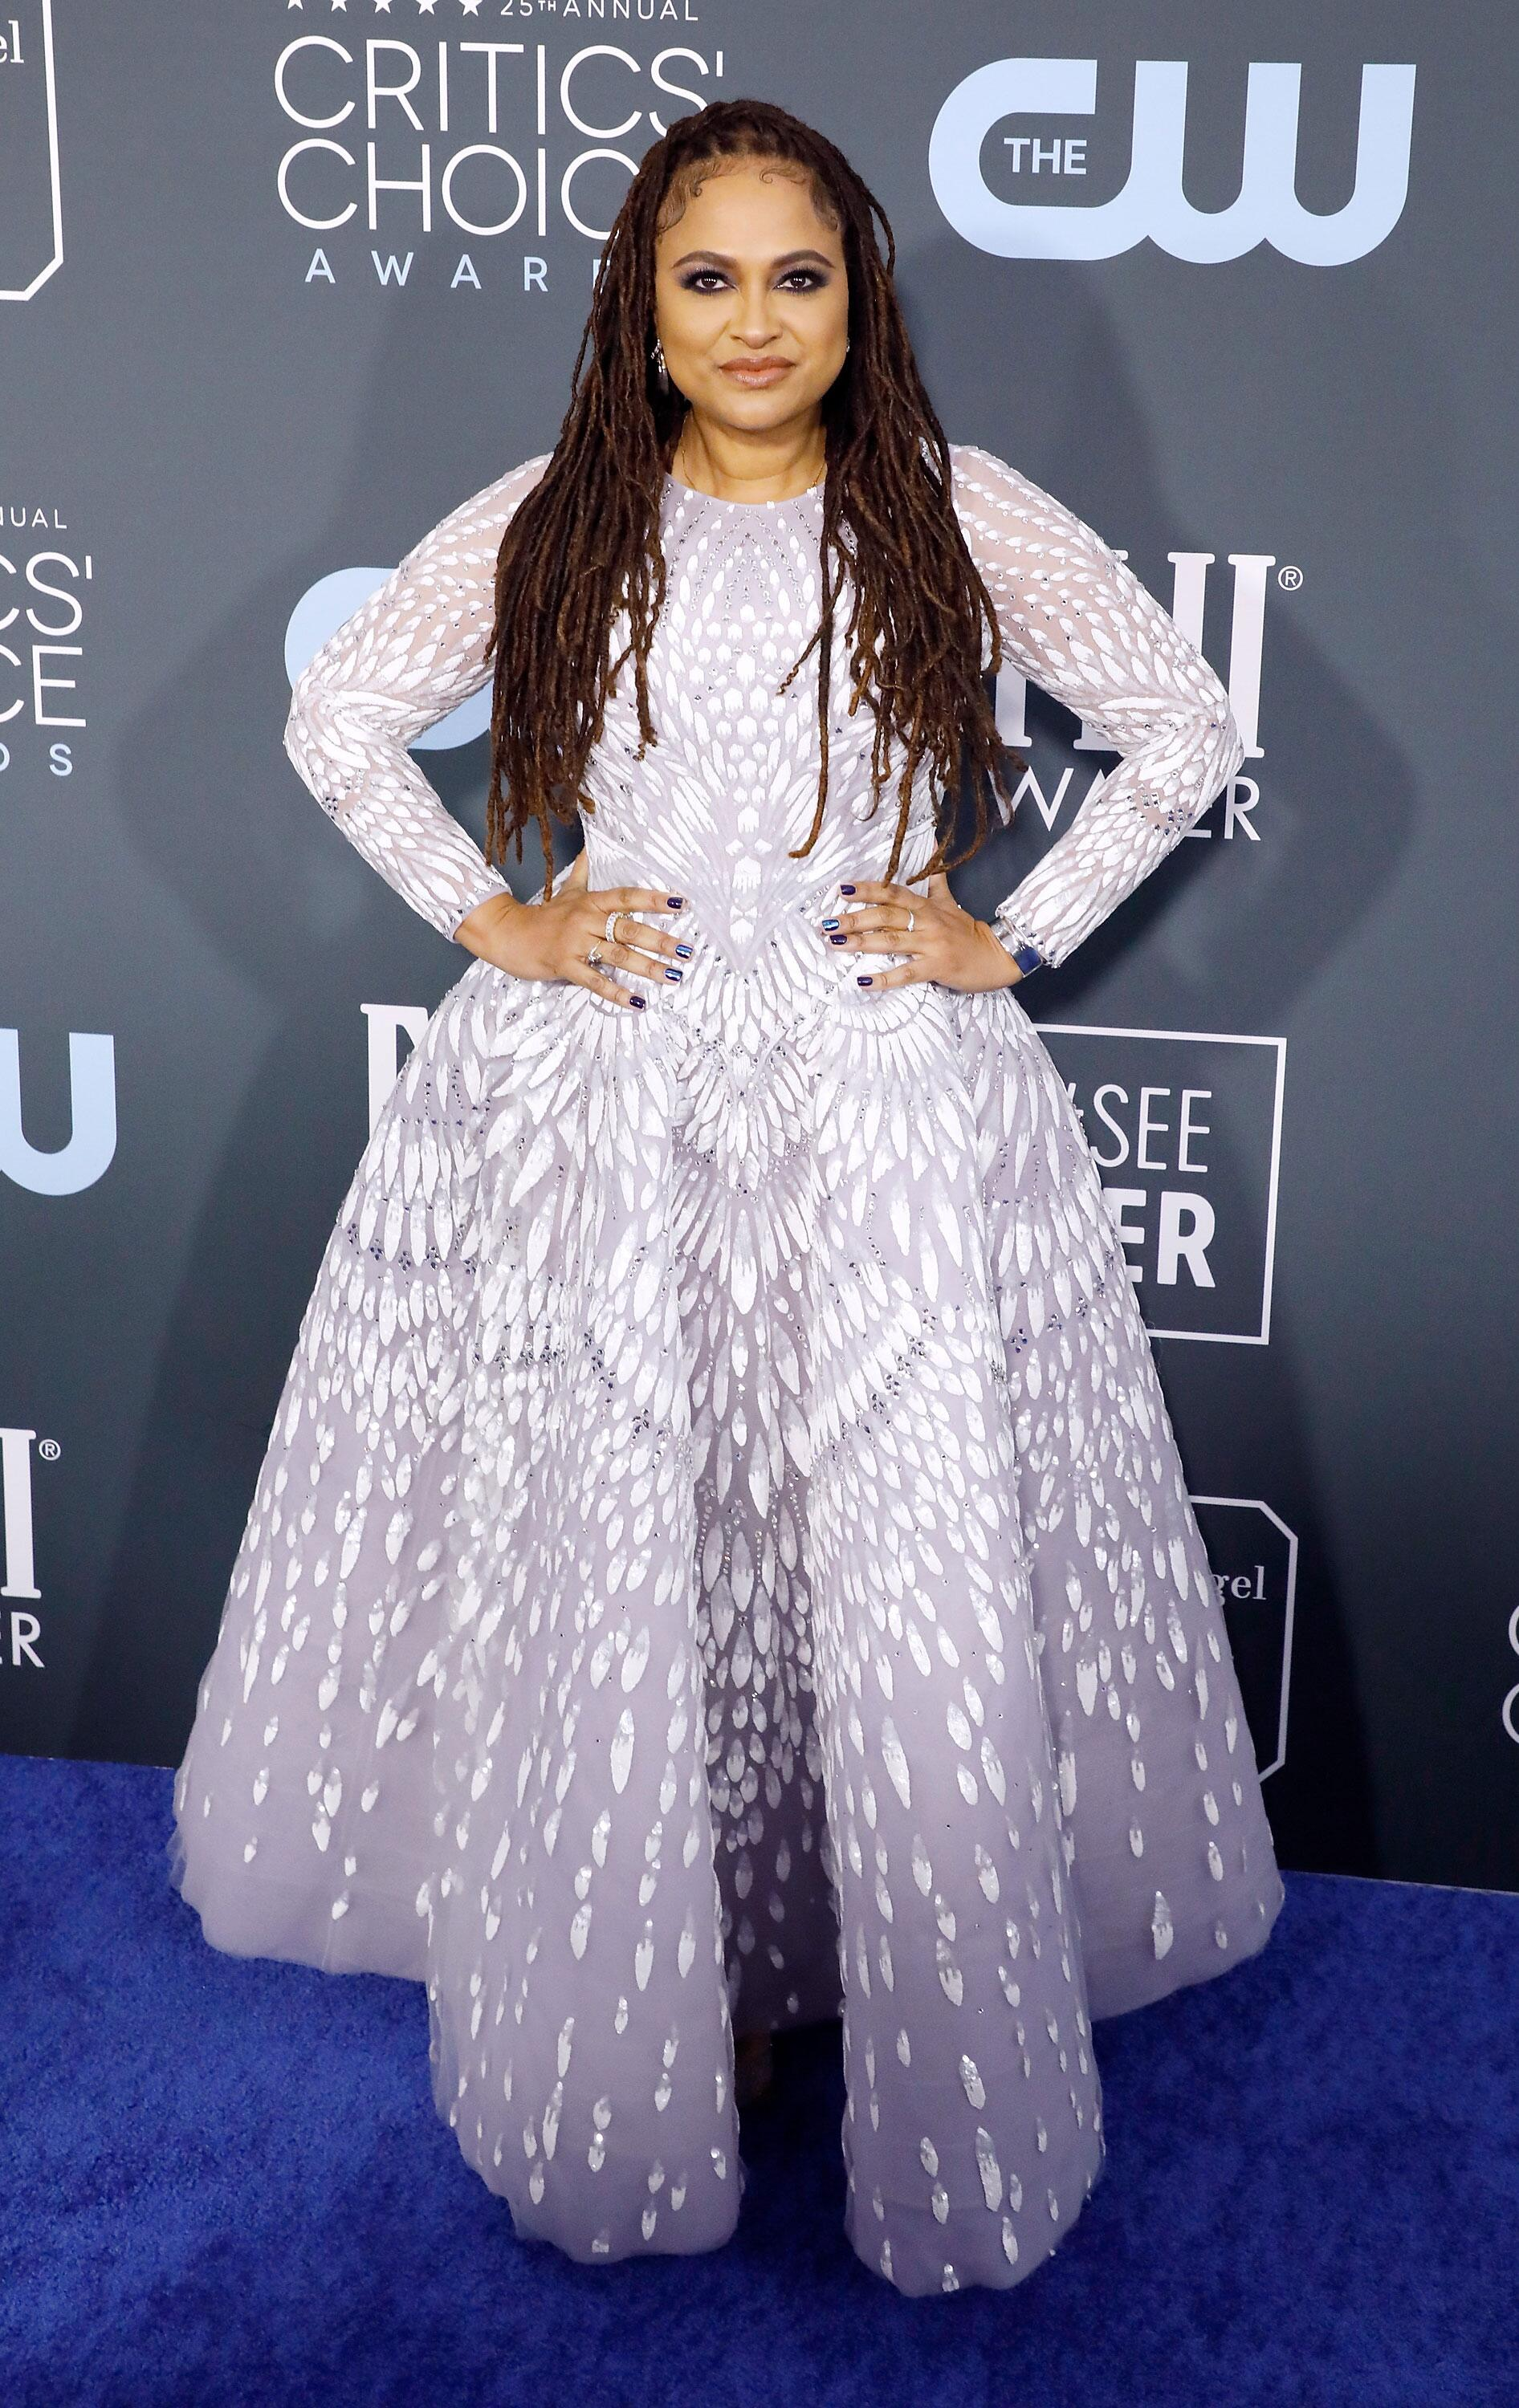 Ava-Duvernay-GettyImages-1199116060-inset.jpg